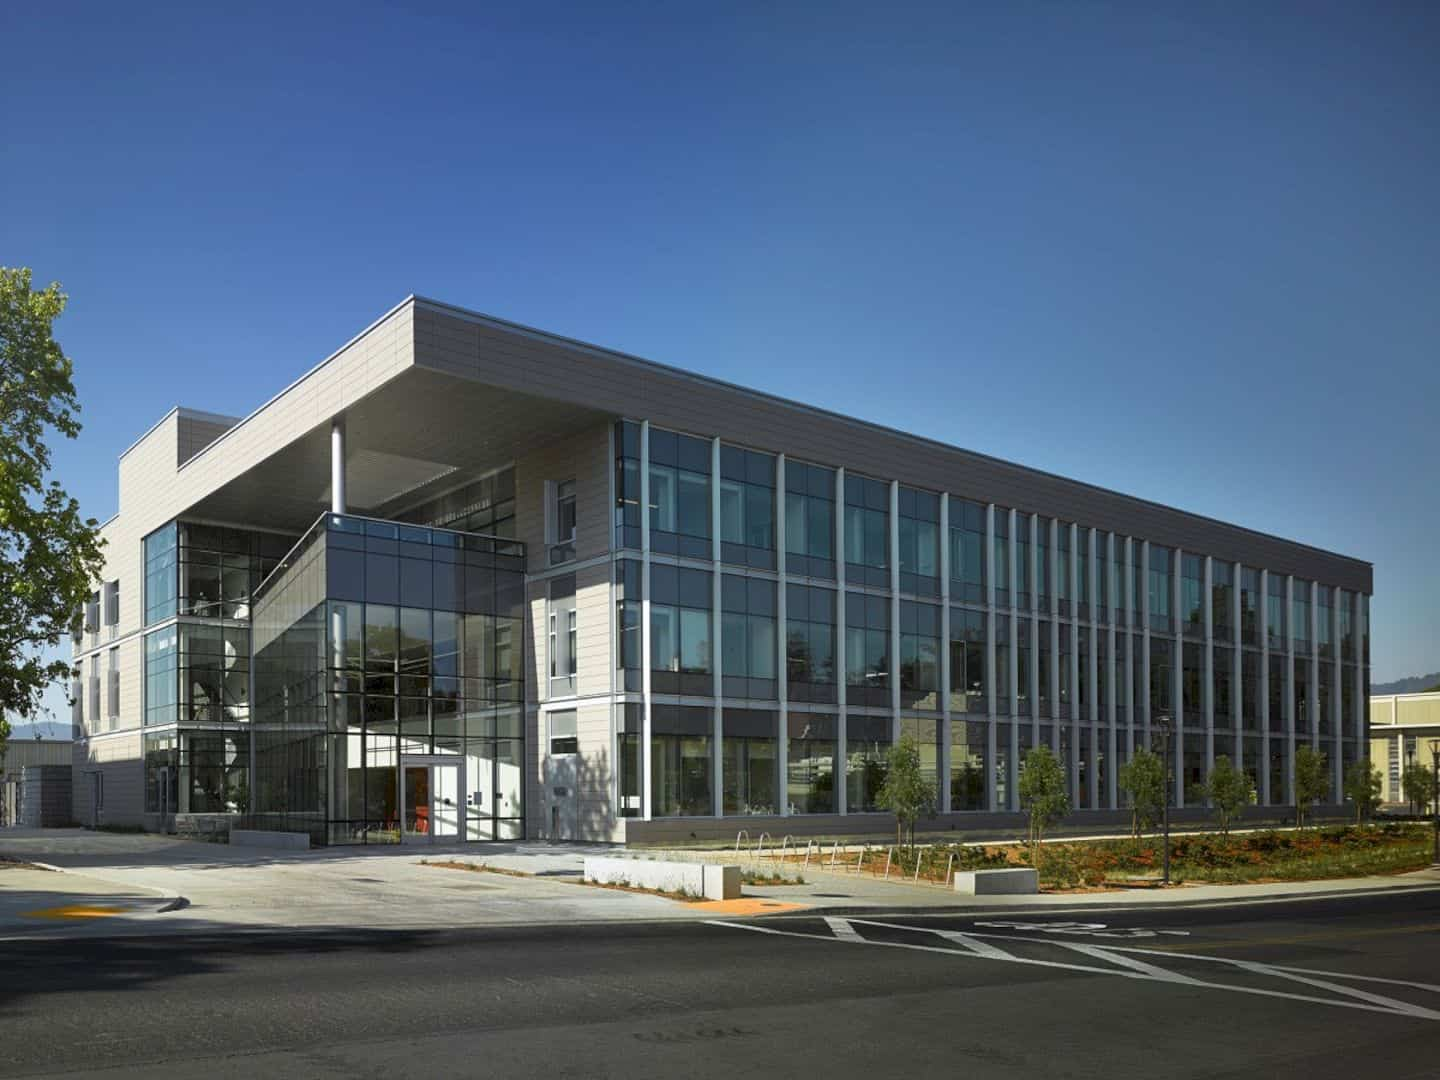 SLAC National Accelerator Laboratory Research Support Building: A Light-Filled and Modern Office Promoting Collaboration and Interaction